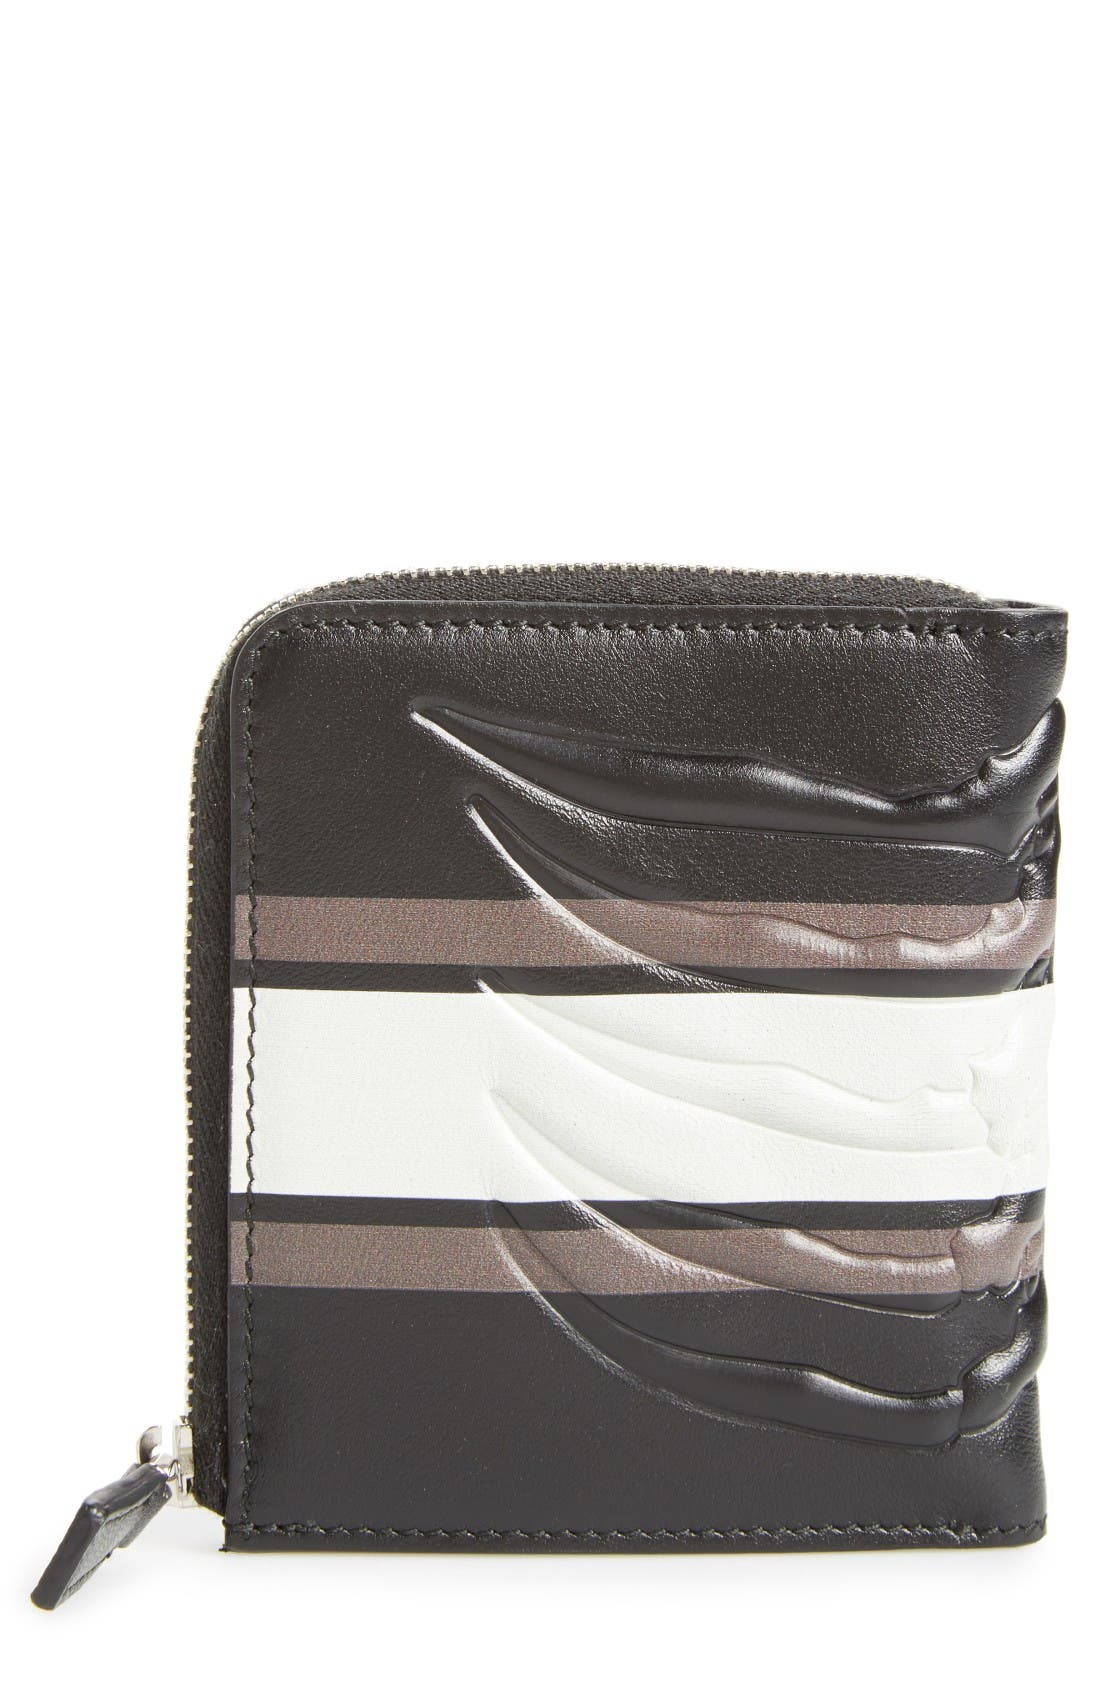 Leather Half Zip Wallet,                         Main,                         color, Black/ Grey/ Off White